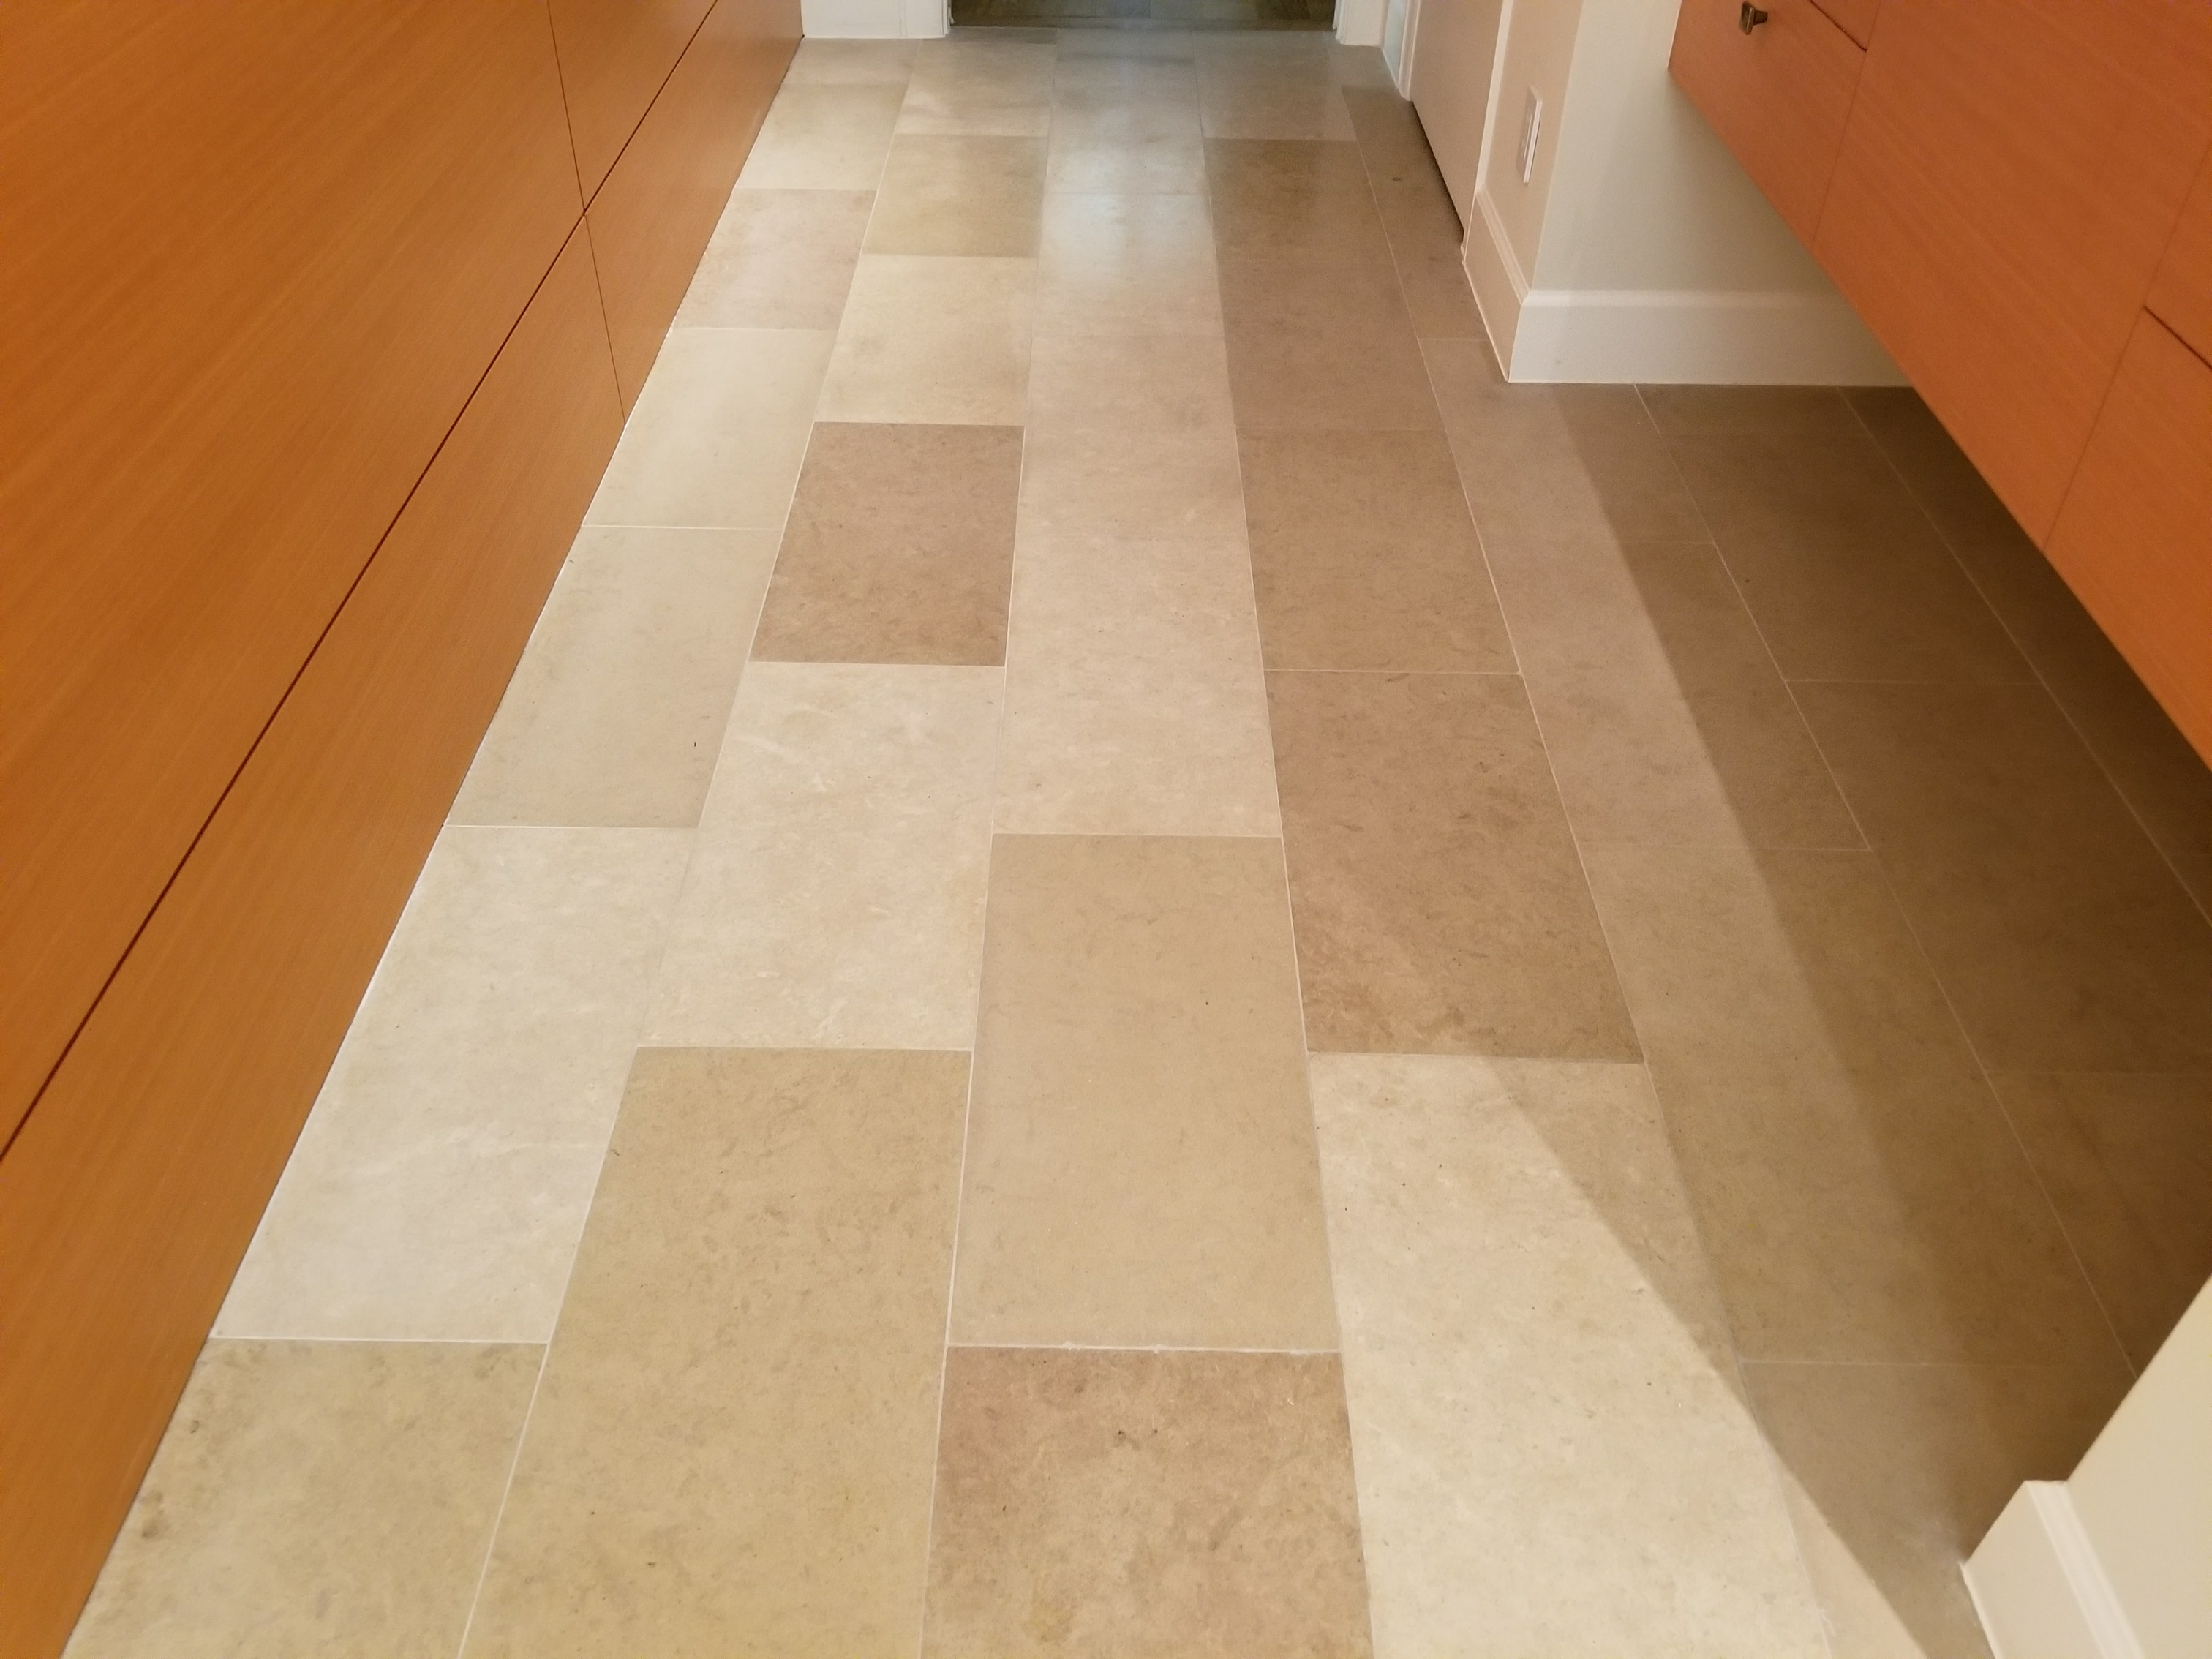 Cleaning Honing And Sealing Limestone Floor Dallas Tx